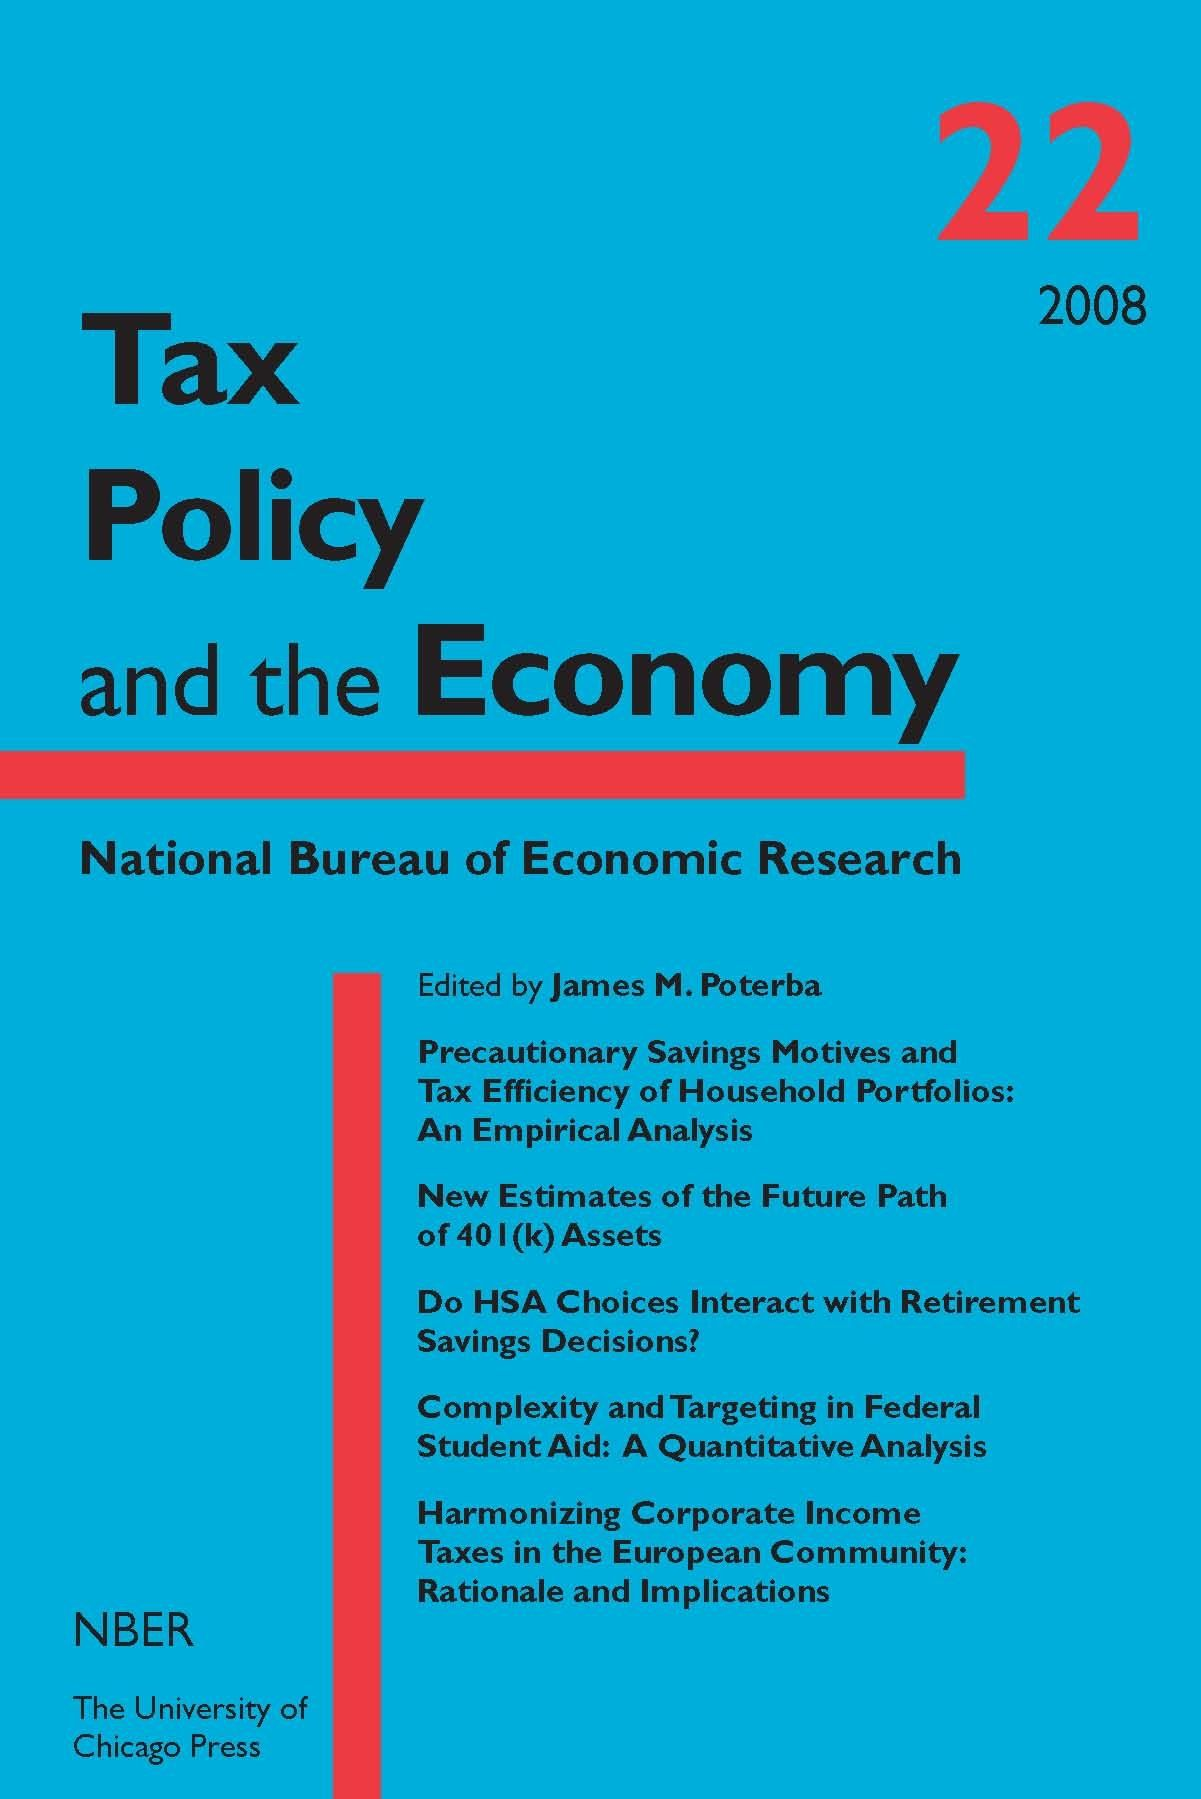 Tax policy and the economy volume 22 national bureau of economic research tax policy and the - Bureau for economic research ...